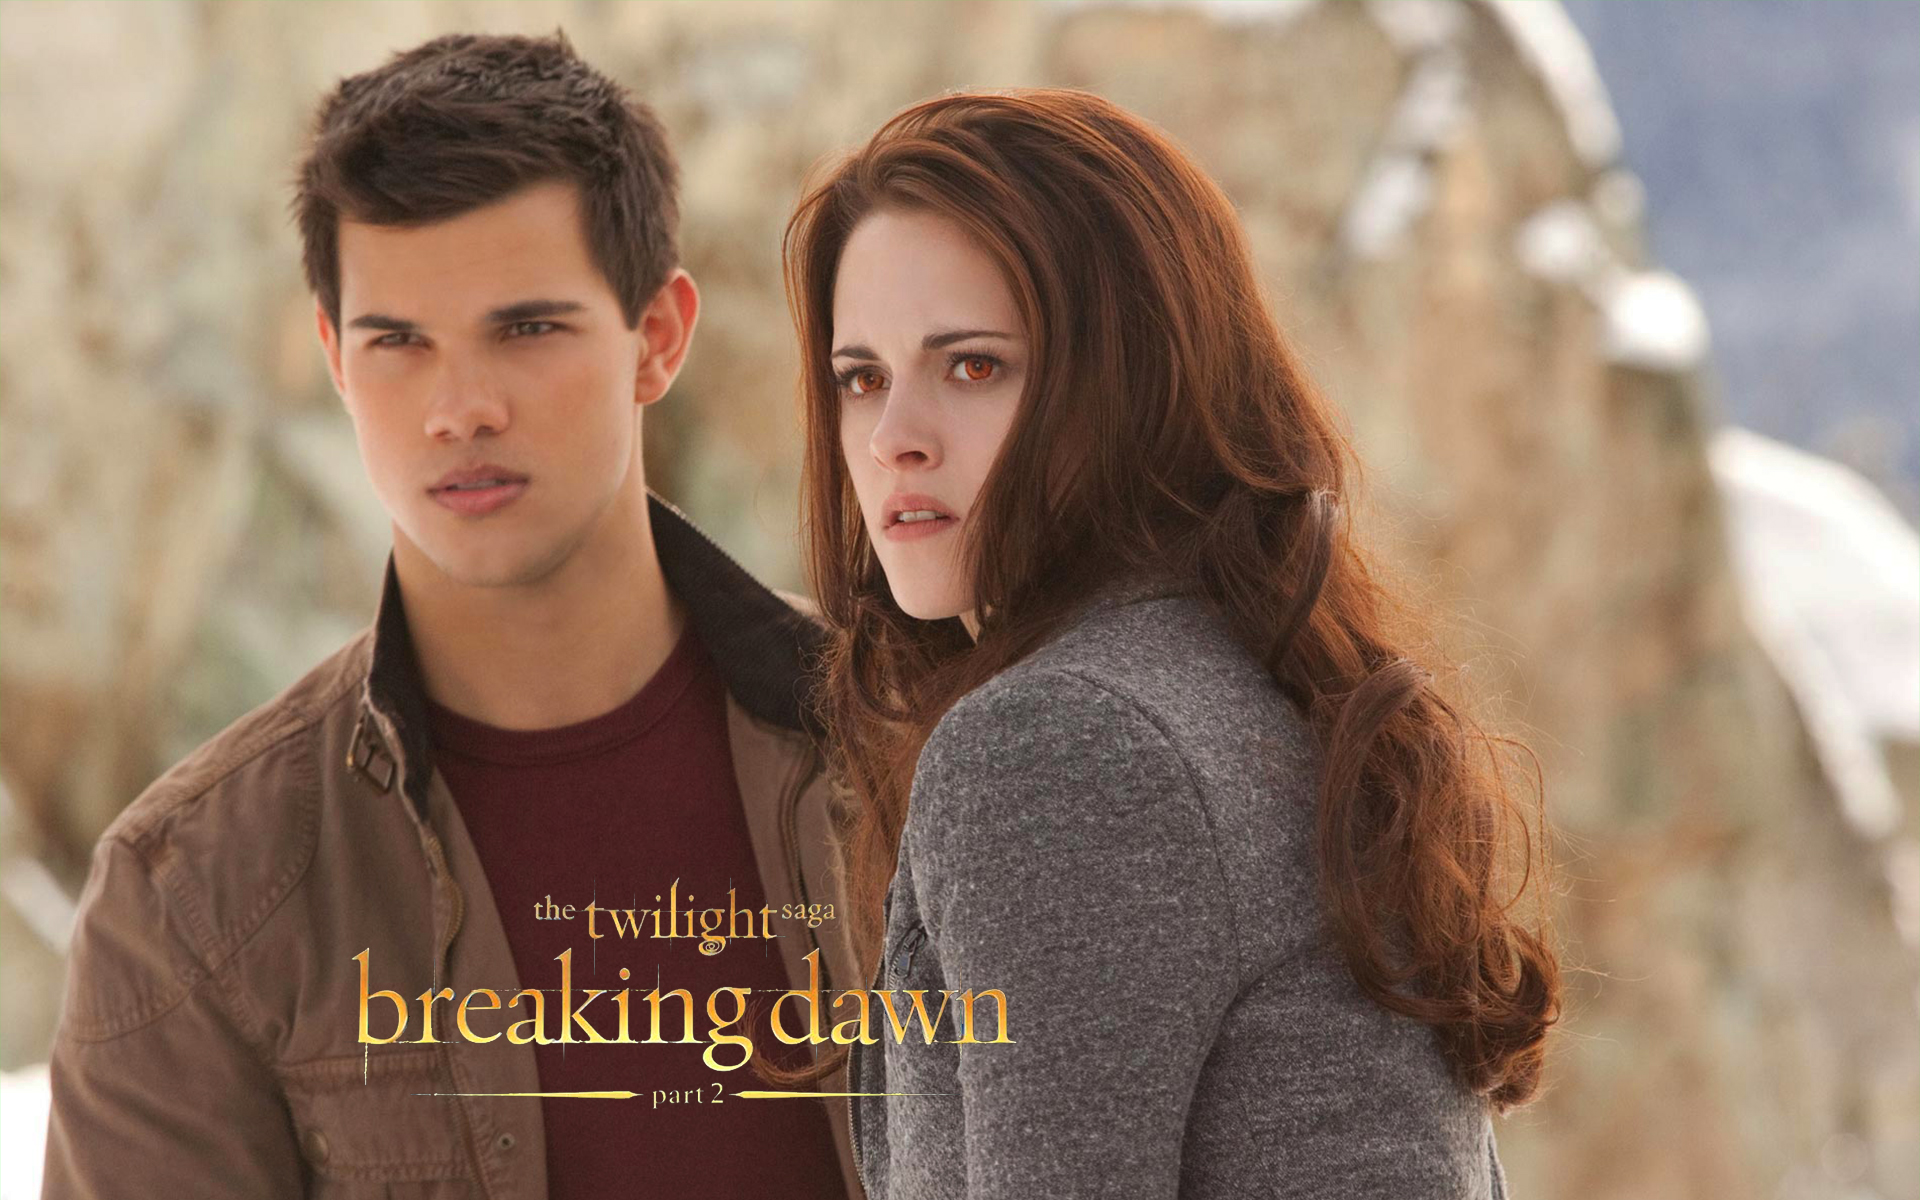 Twilight Breaking Dawn Part  High Quality Image